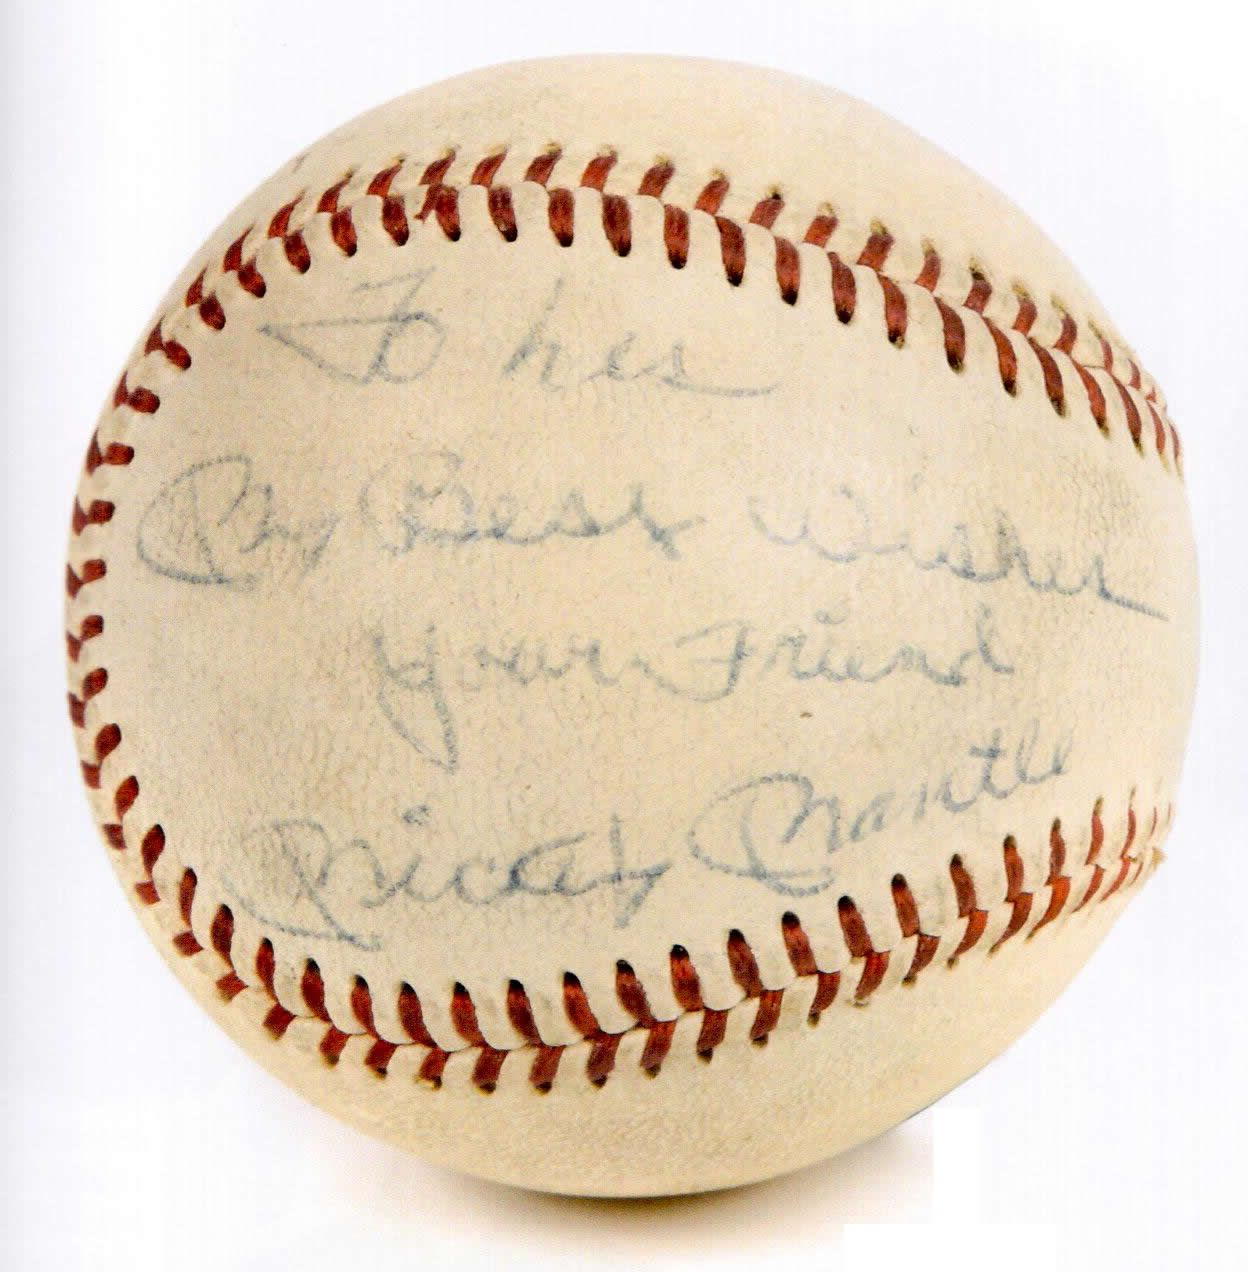 Baseball Signed By Mickey Mantle To Les My Best Wishes Your Friend Mickey Mantle Baseball Signs Mickey Mantle I Am Awesome